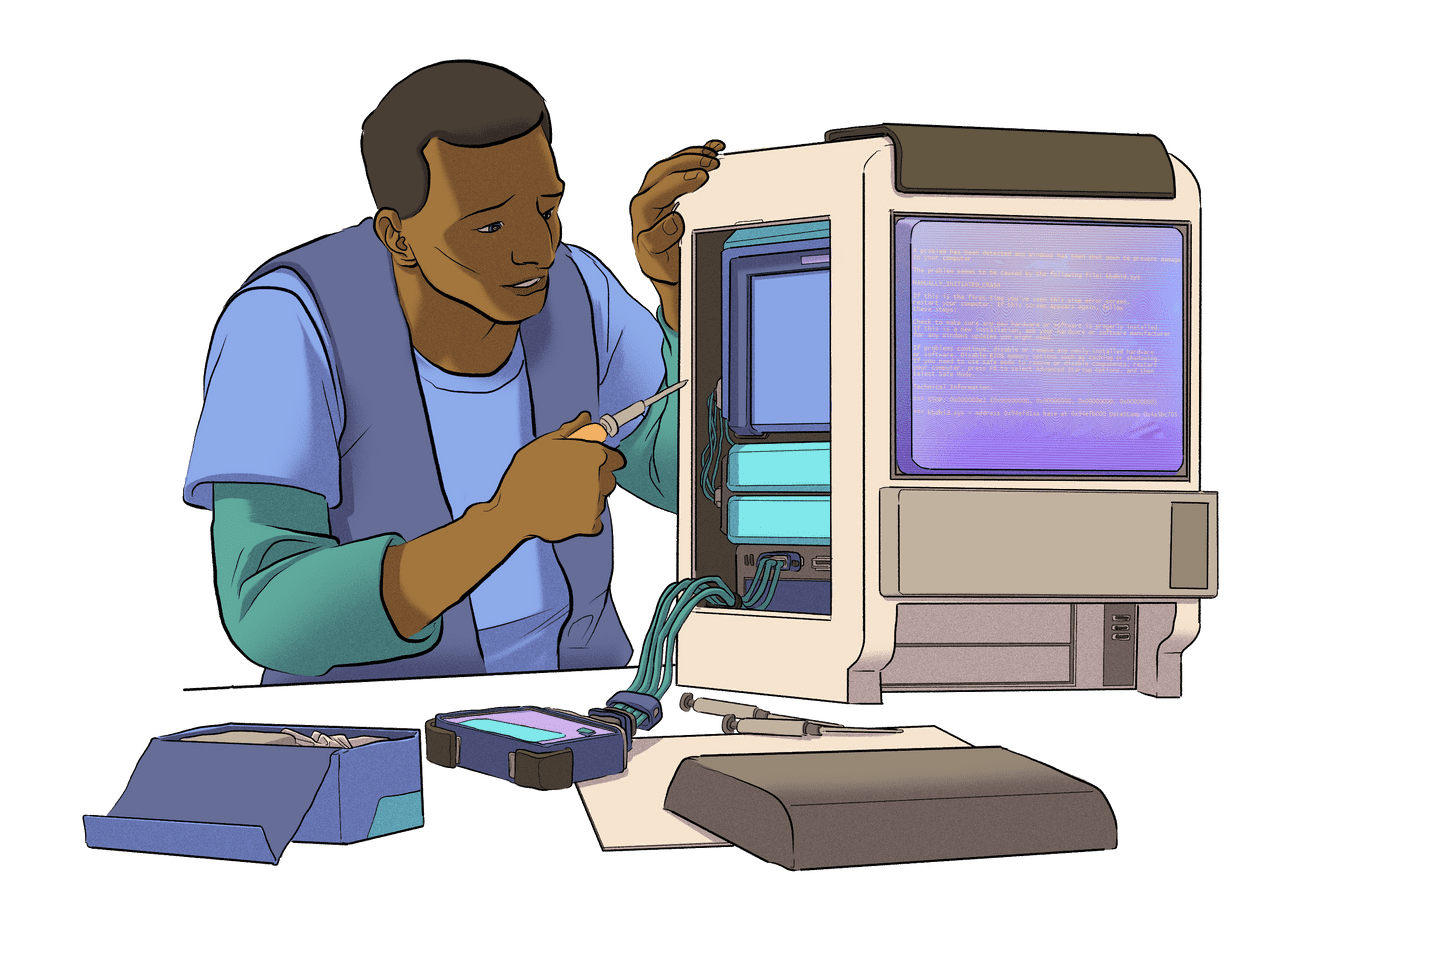 Illustration of a person working on a computer.